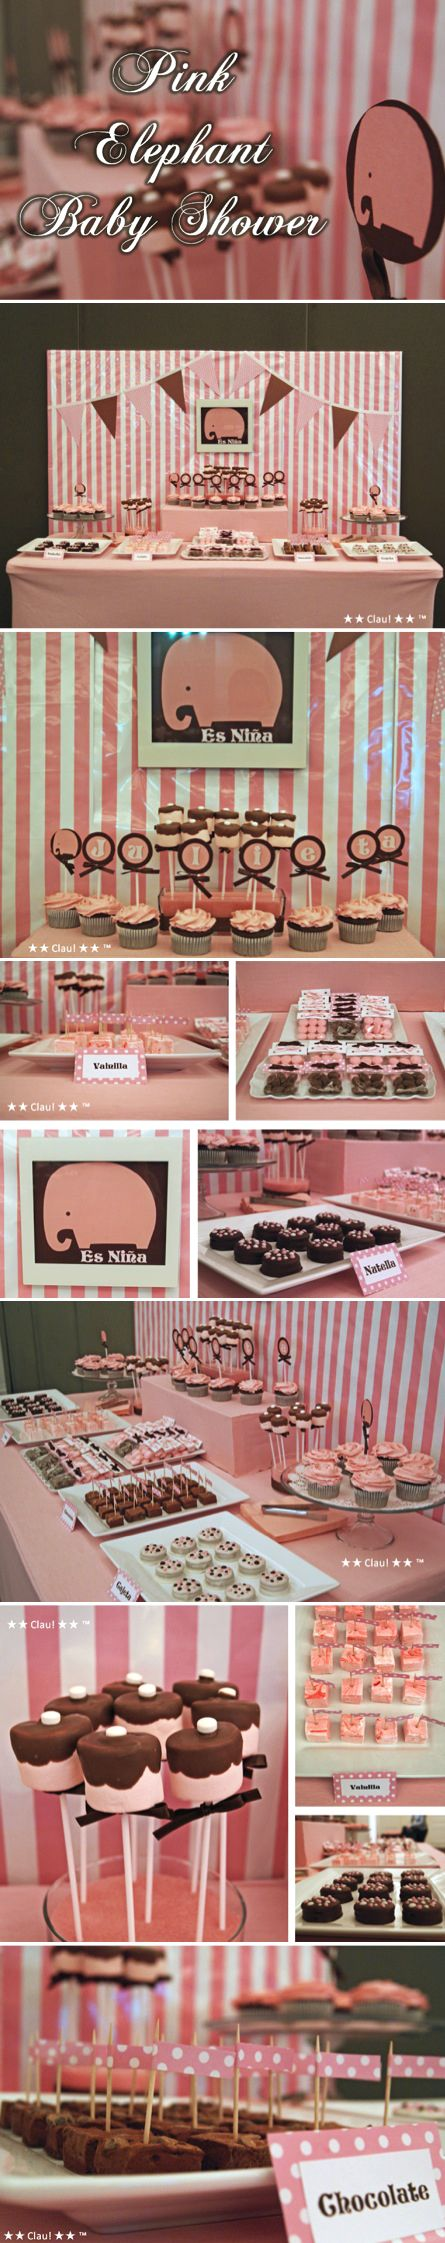 Pink Elephant Baby Shower - Dessert Table - Pink and Brown / Mesa de postres y dulces para baby shower en colores rosa y café - Tema: Elefante